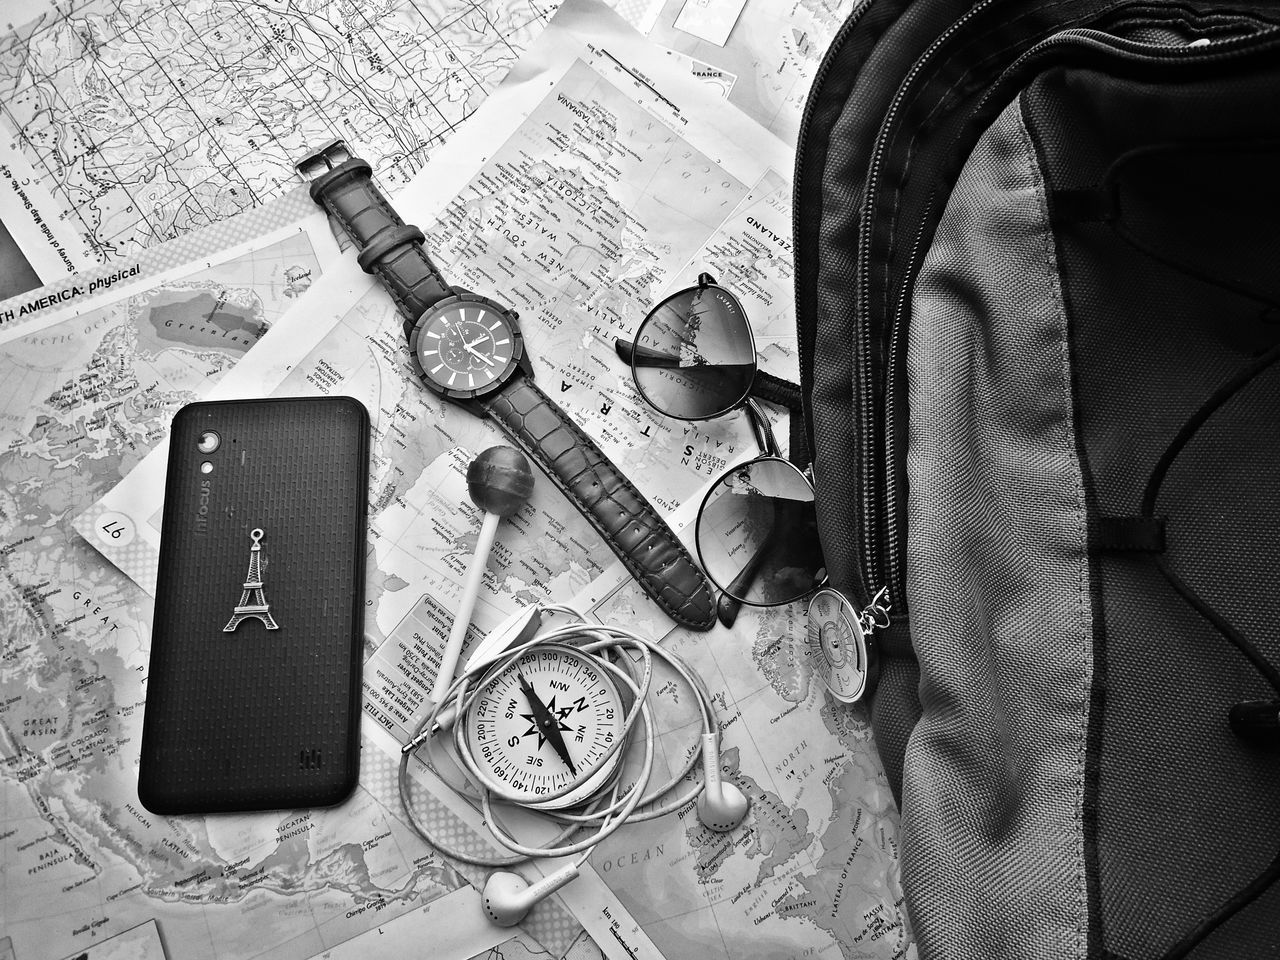 No People Day First Eyeem Photo Classic Monochrome Watch Headphones Camping Traveling Traveller Voyage Bagpack Lost Mobile Sunglasses Maps Paris France Efil_tower